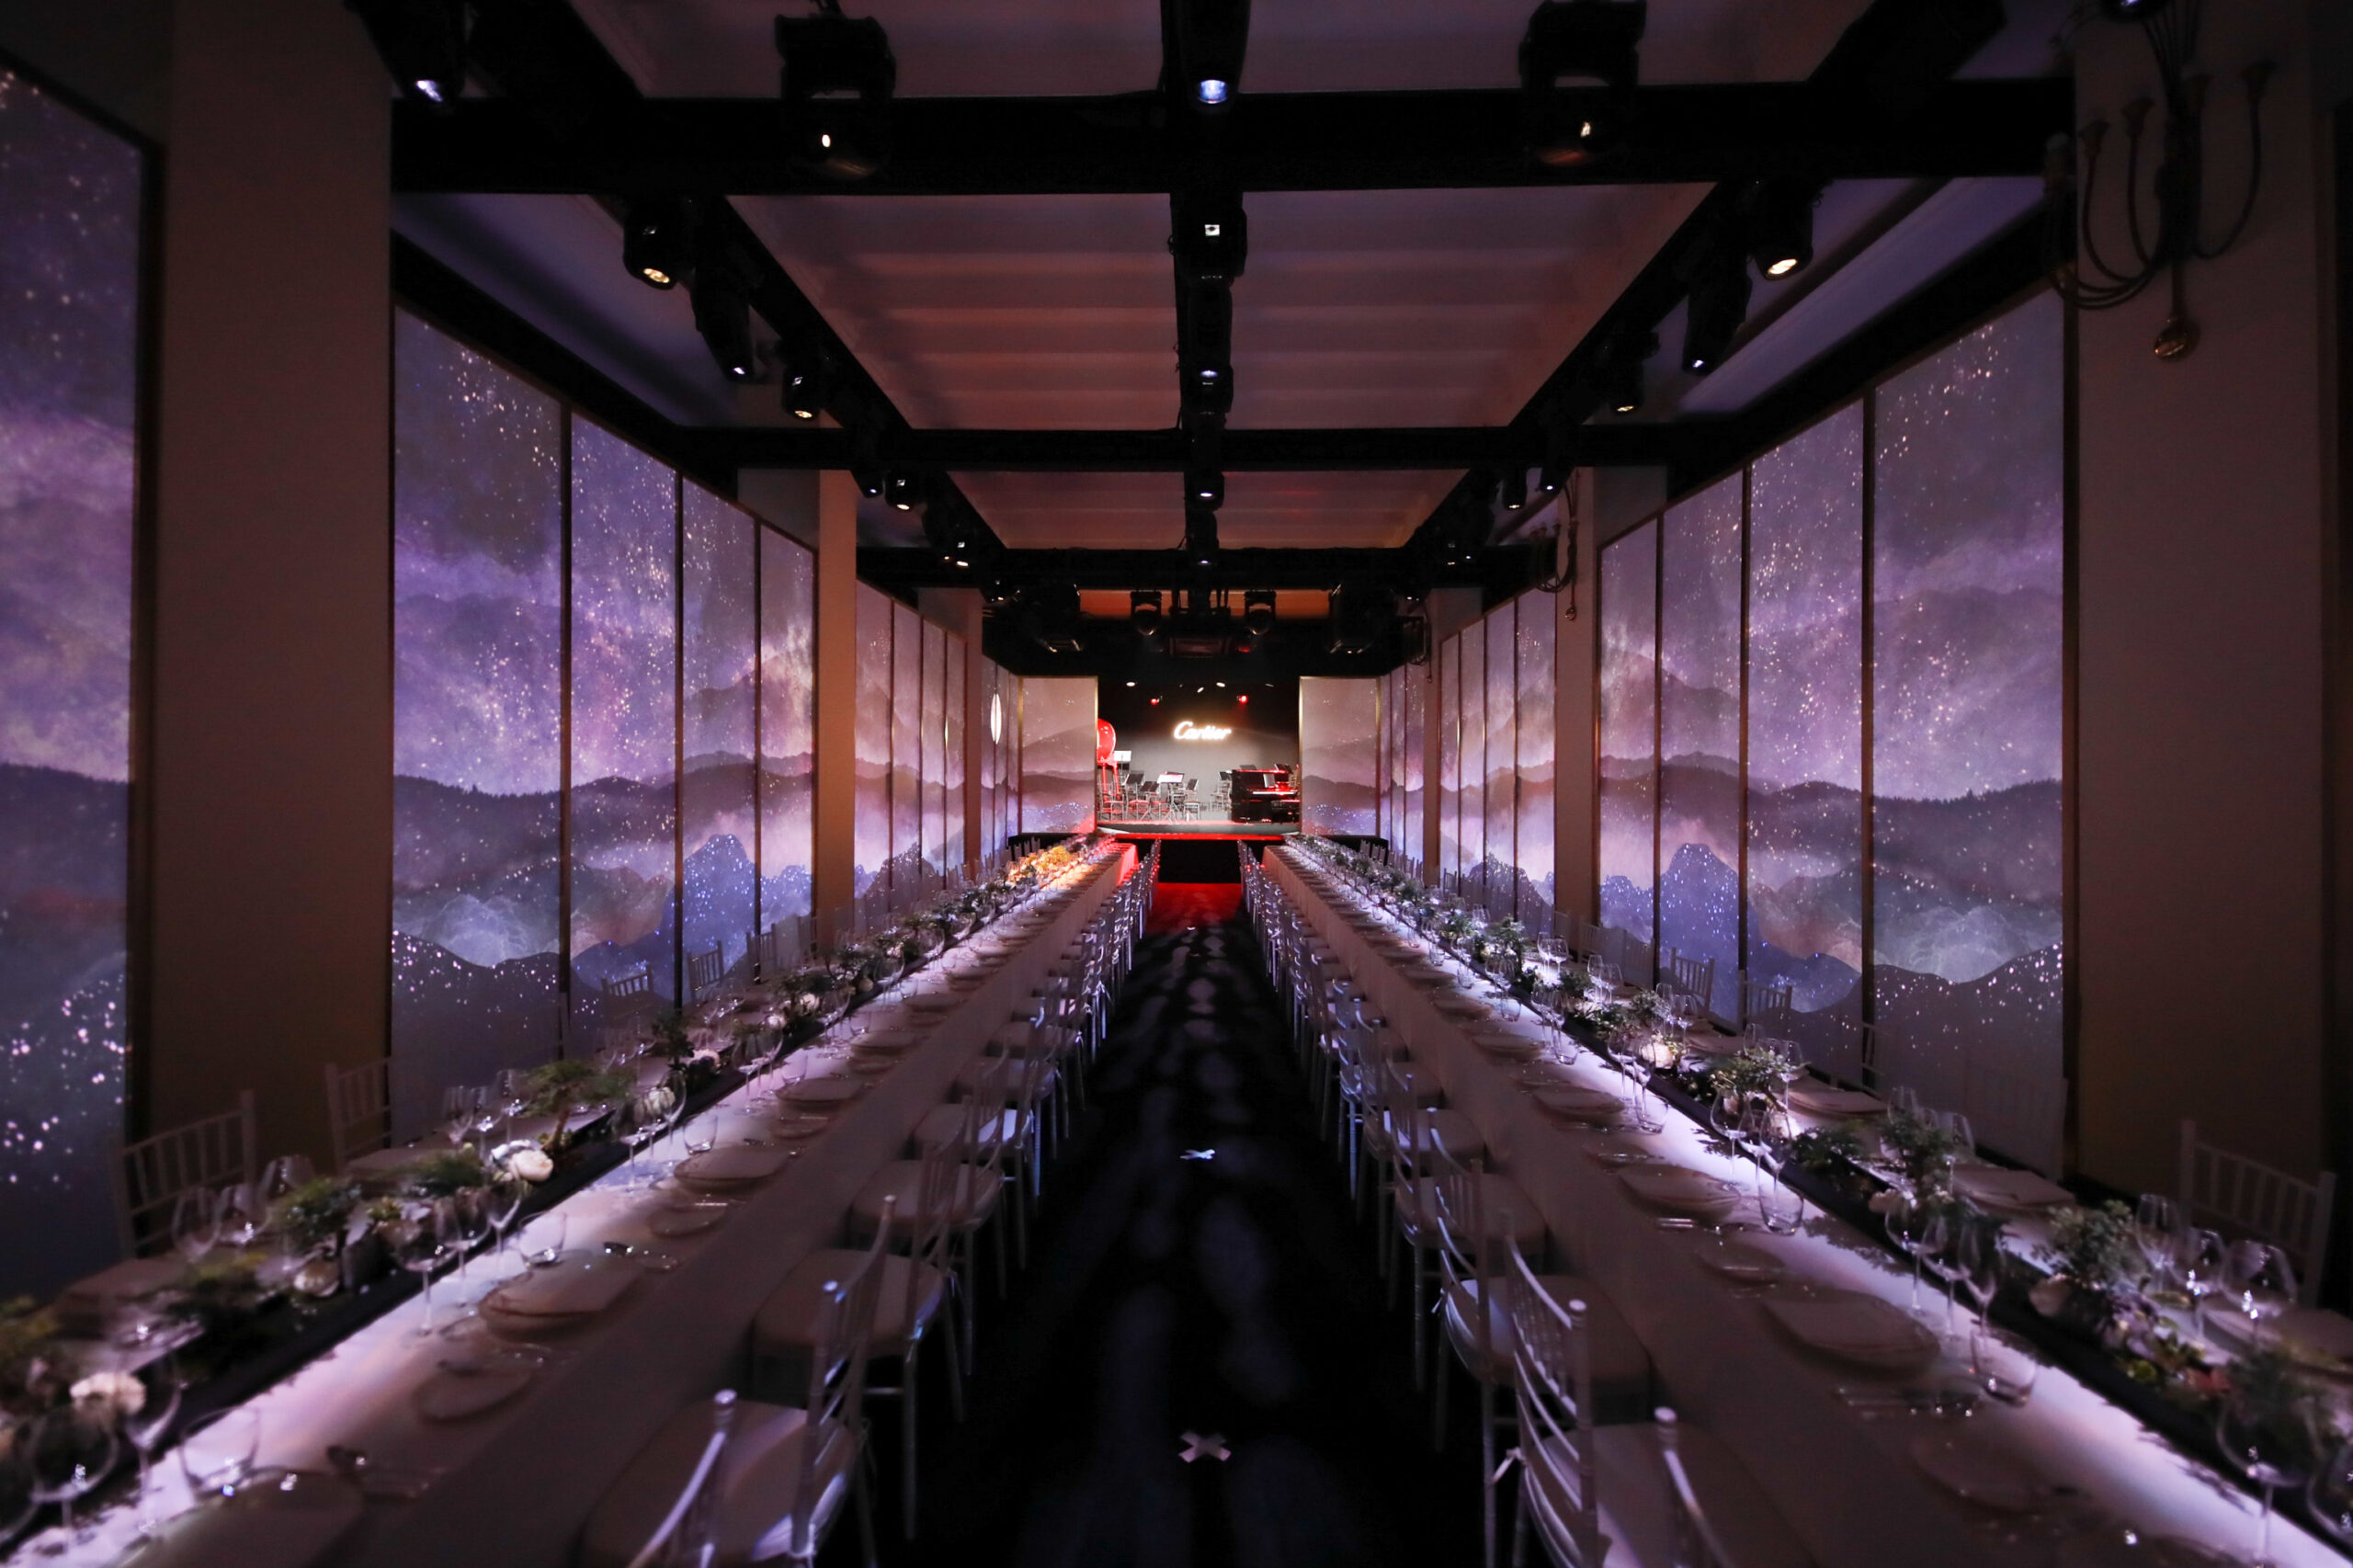 Cartier P66 Boutique Re-opening & Gala Dinner July 31st Shanghai – 9